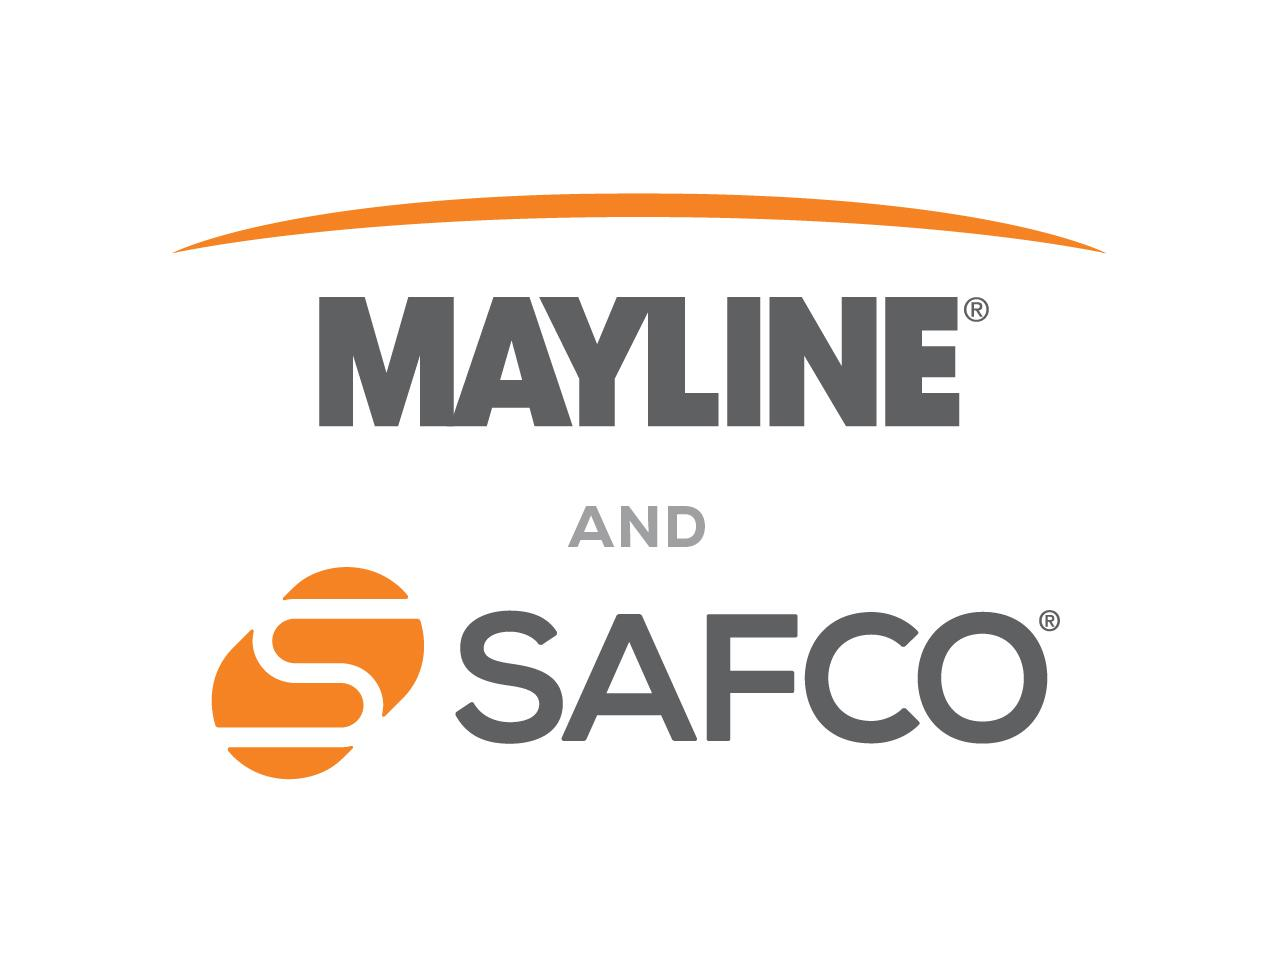 About Mayline—Safco